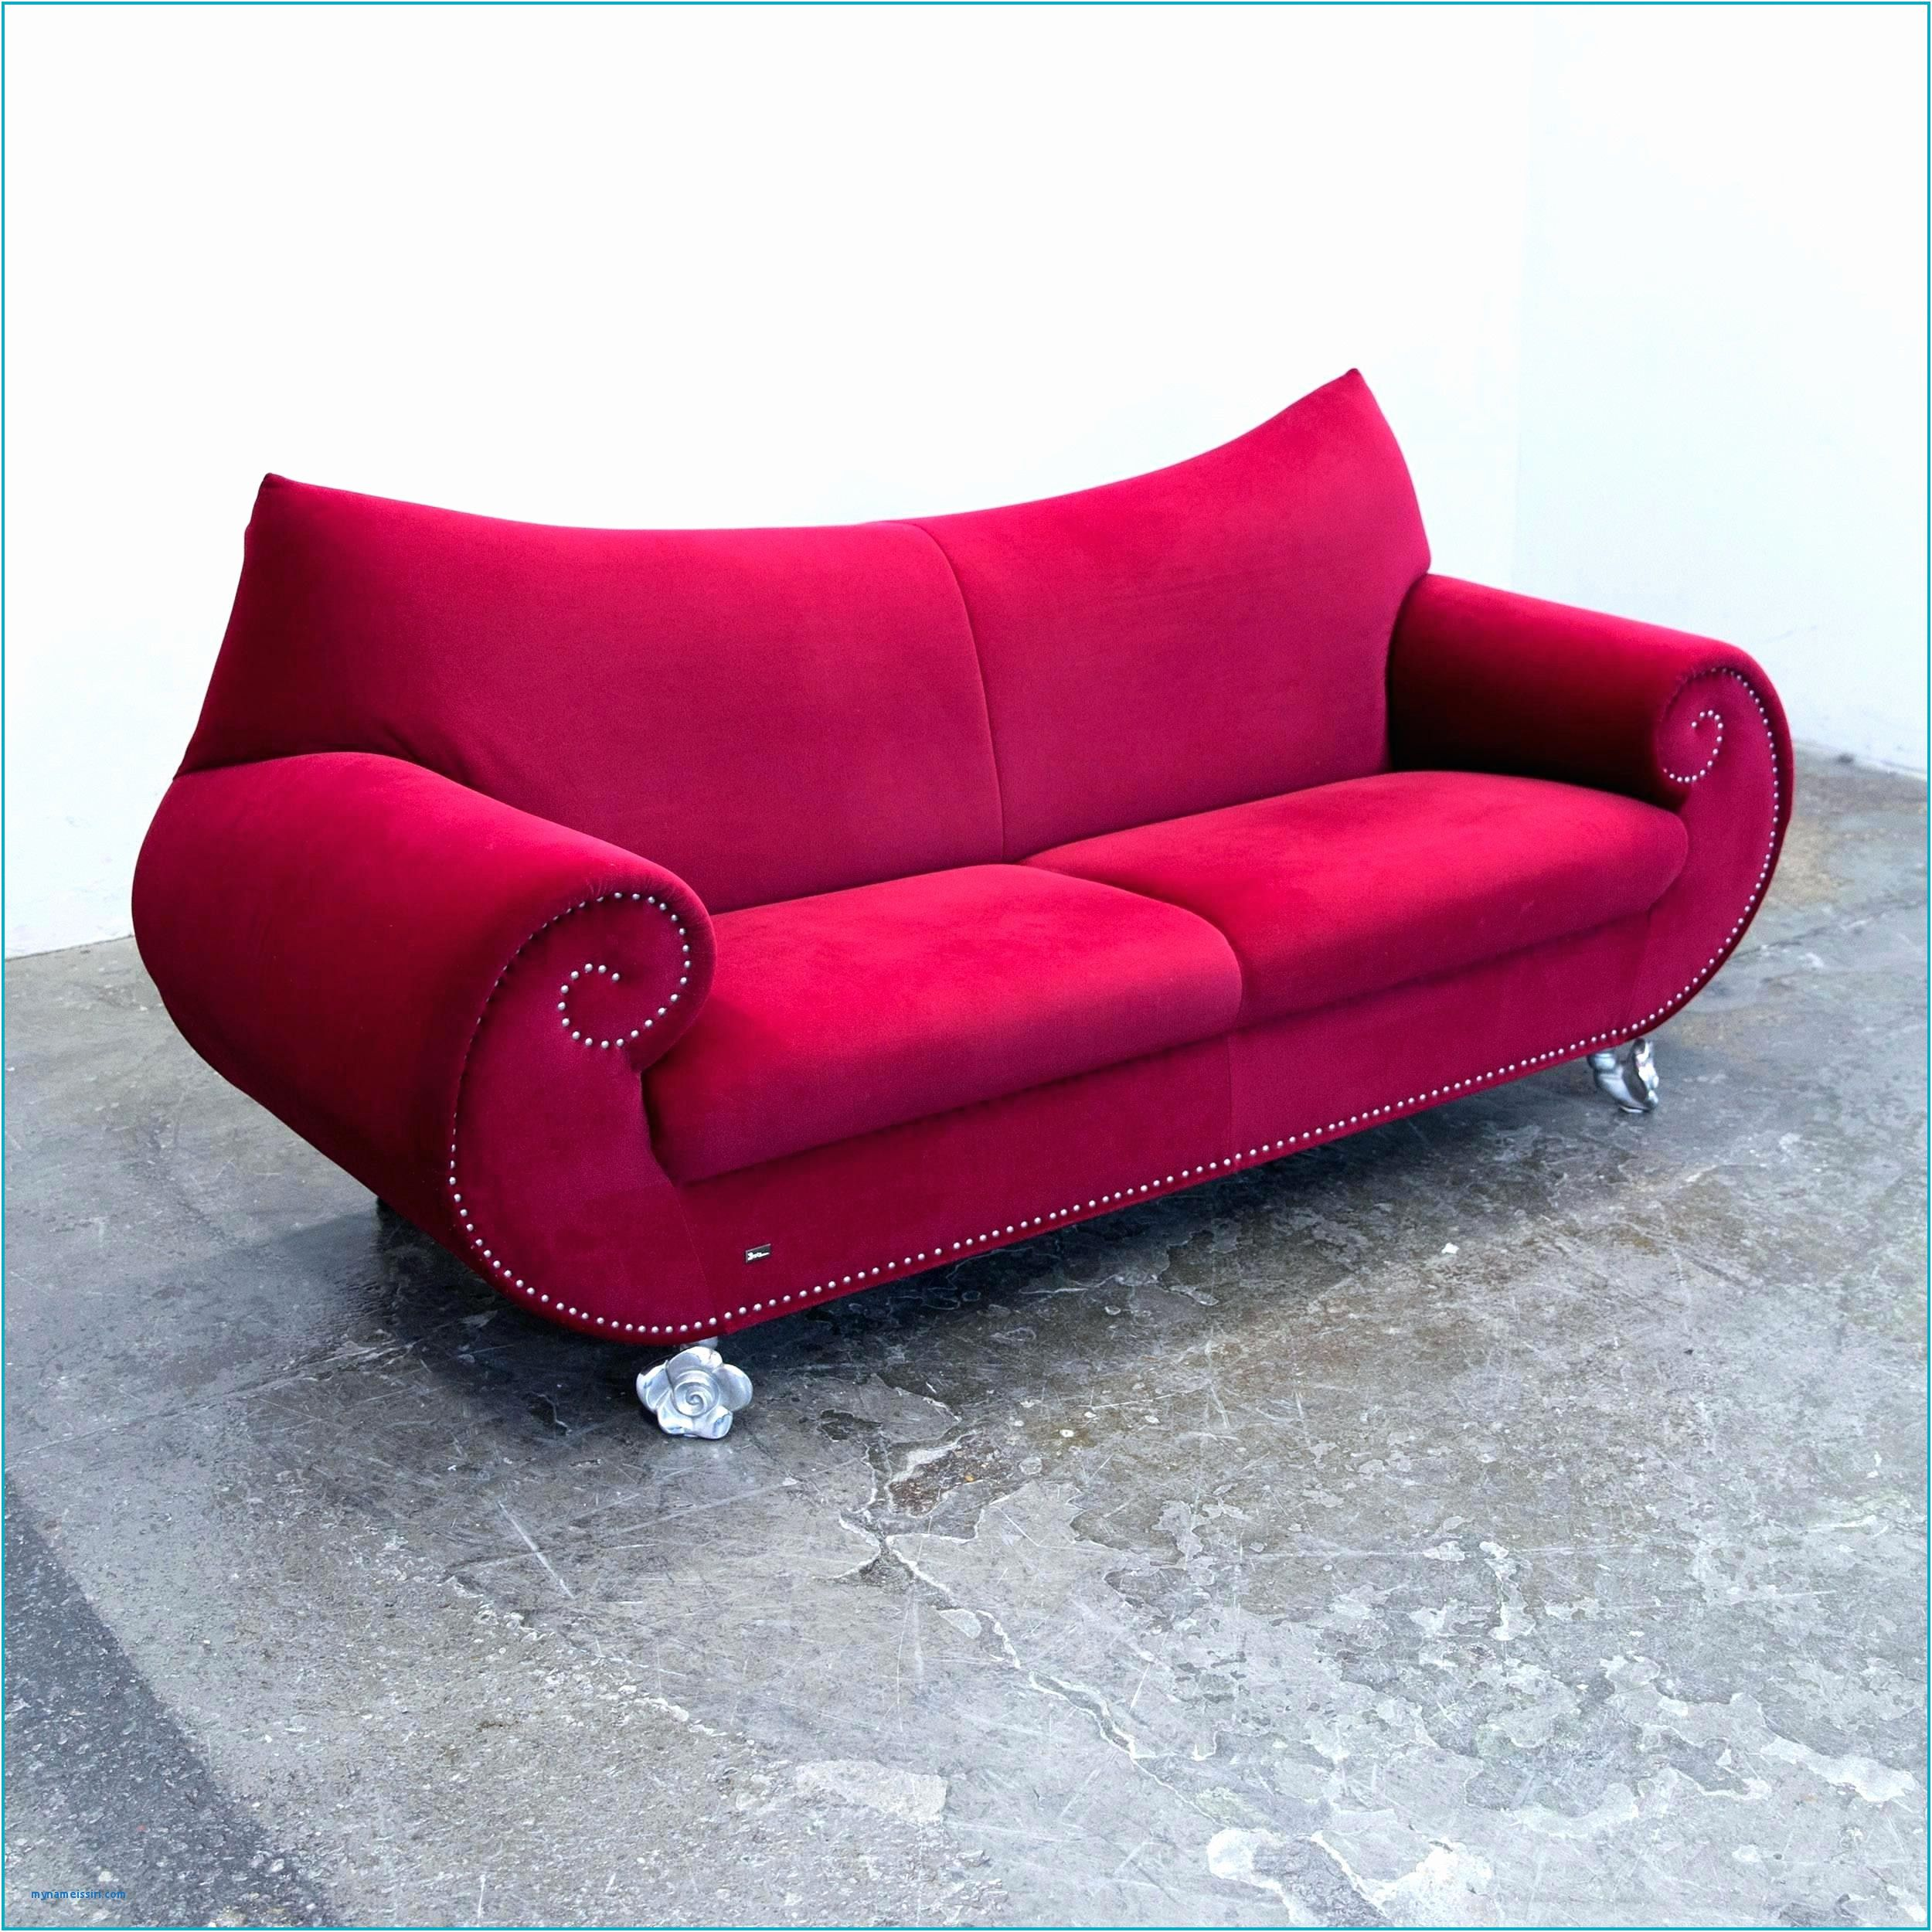 Teuer Couchgarnitur Otto Check More At Https Tridentbeauties Org Couchgarnitur Otto 2 20061